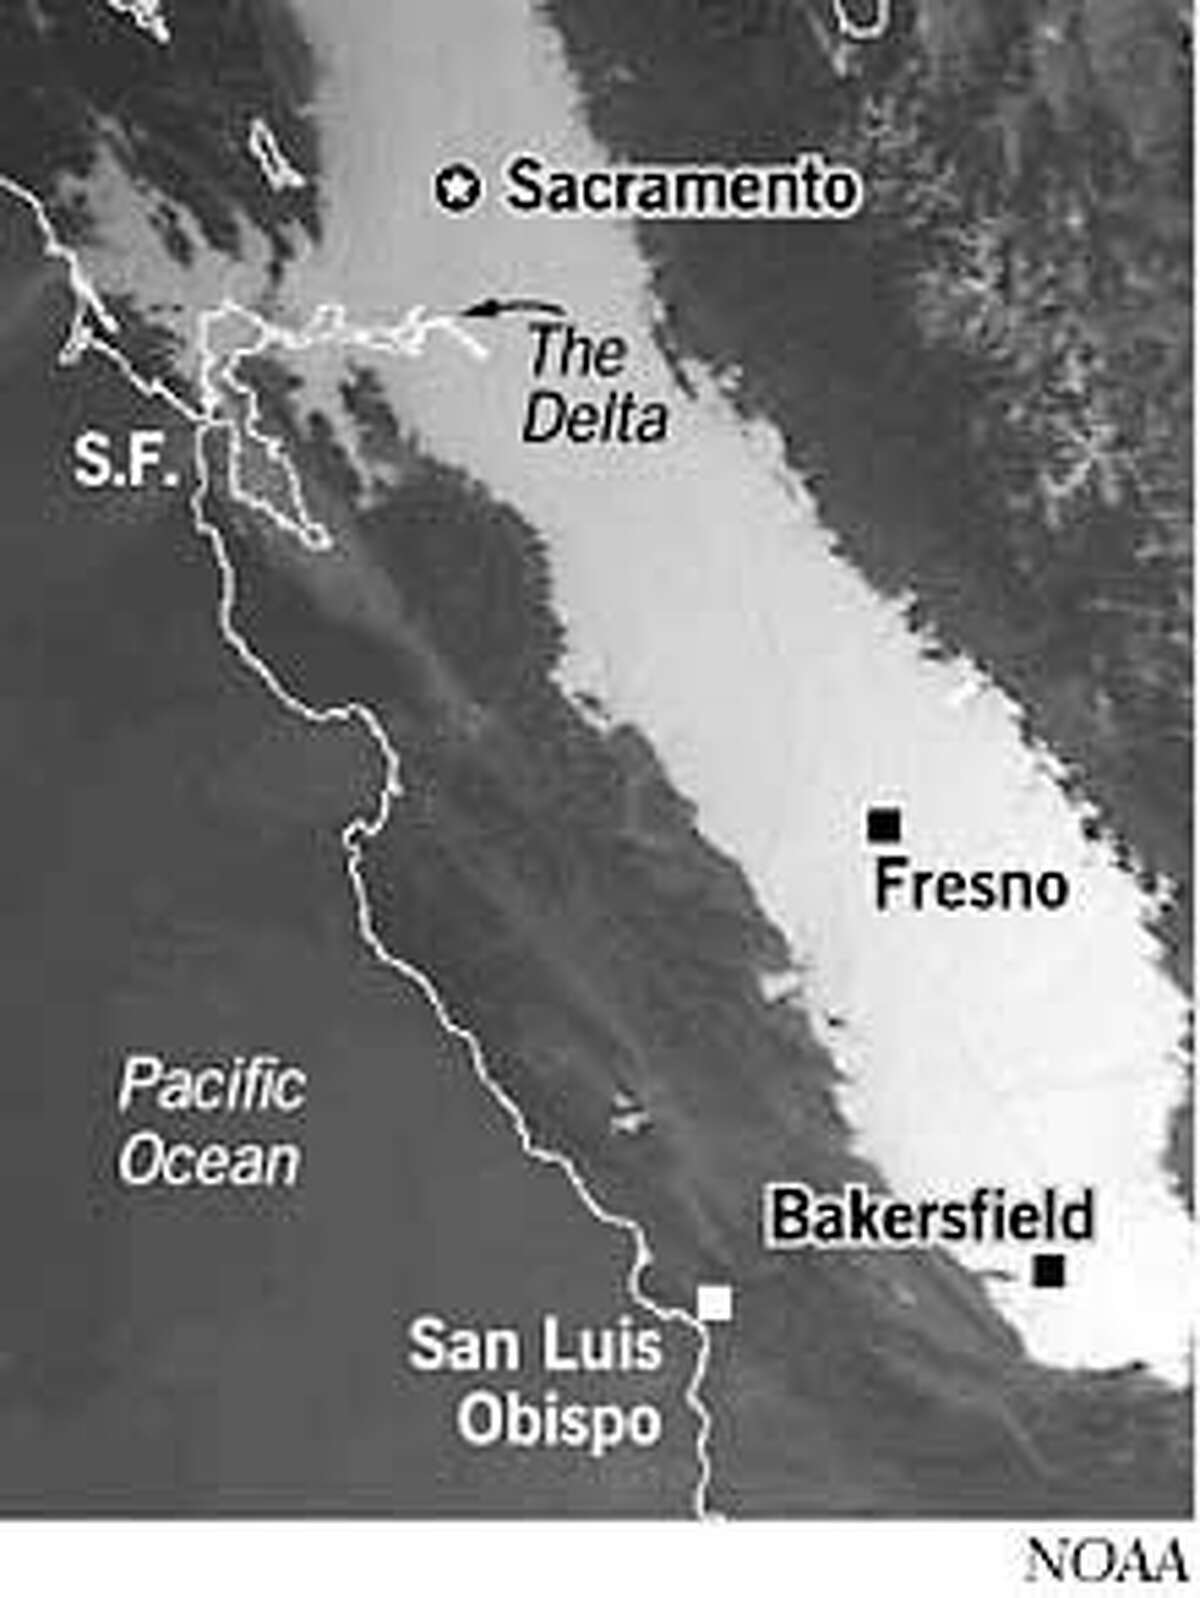 Tule fog blankets the Central Valley in this satellite photo taken in the early morning in January 1996. NOAA Graphic